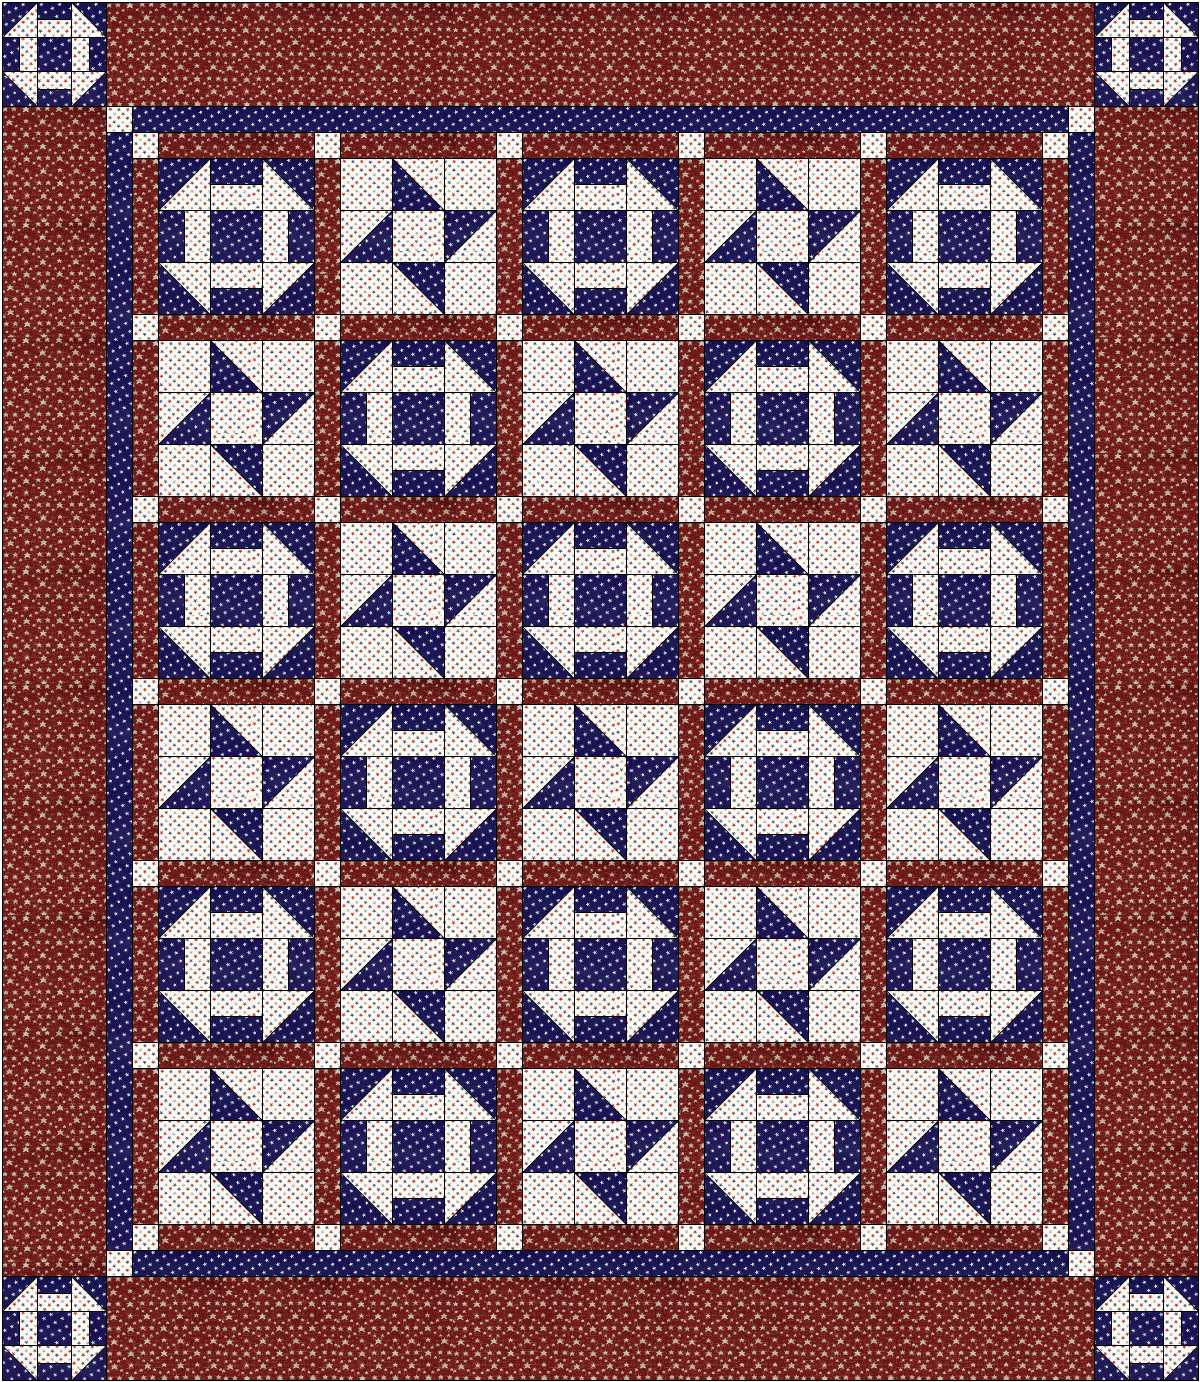 Quilts of Valor: December 2011